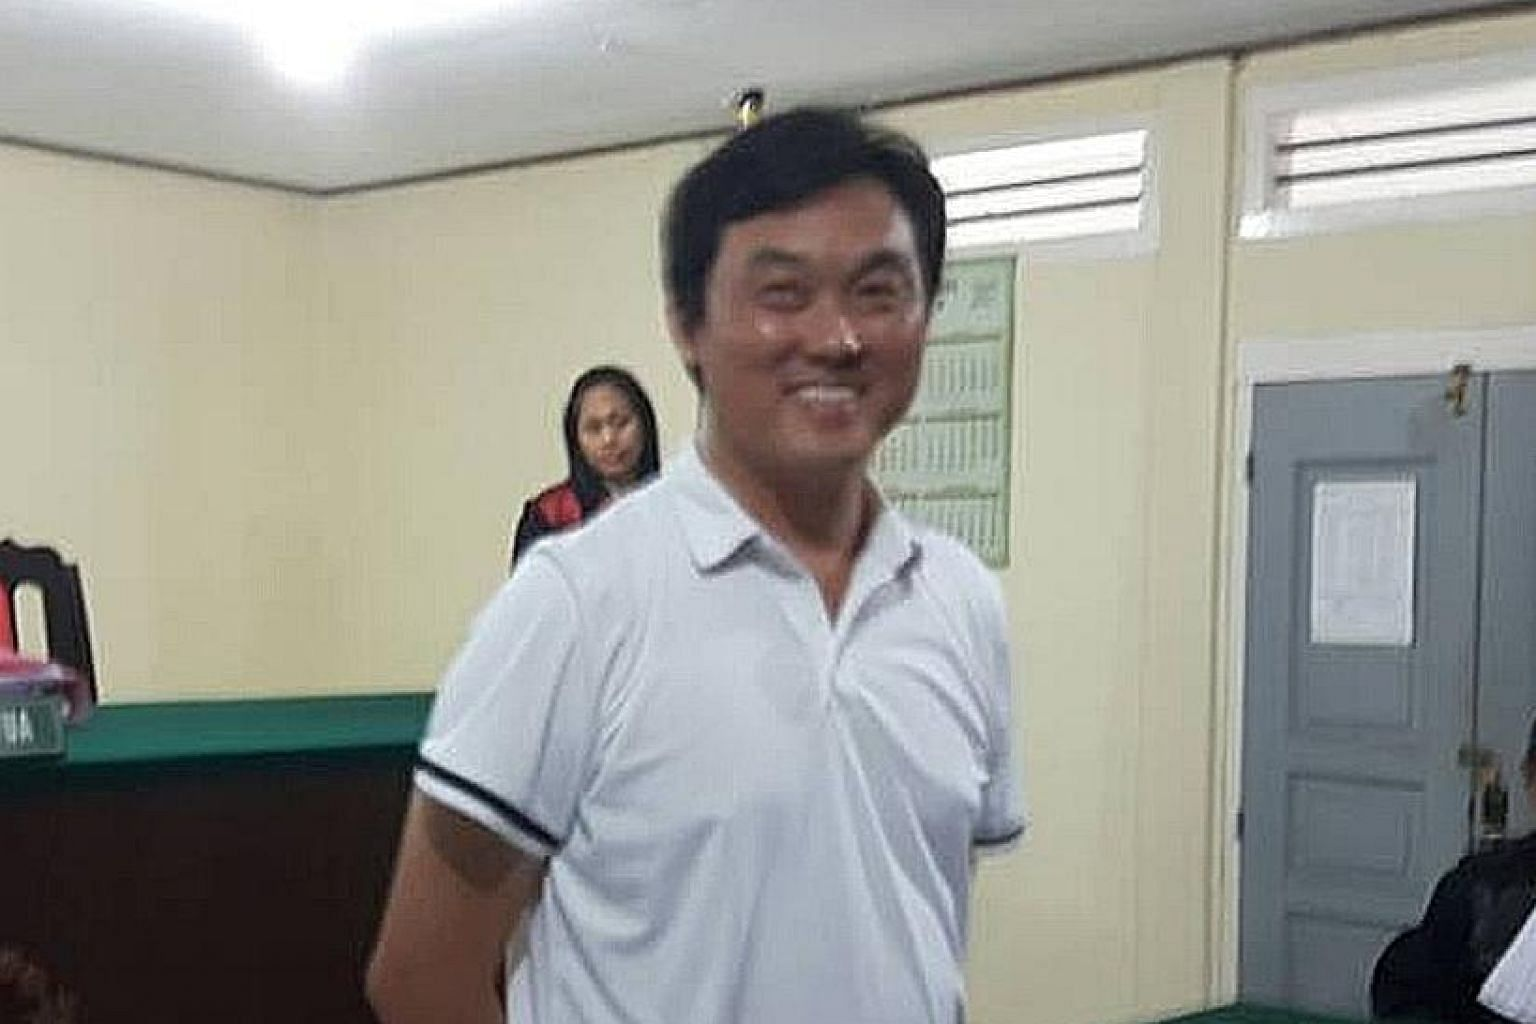 Boat captain Ricky Tan pleaded guilty to trespassing in Indonesian waters and was sentenced to six months' probation and fined 5 million rupiah (S$520) yesterday.